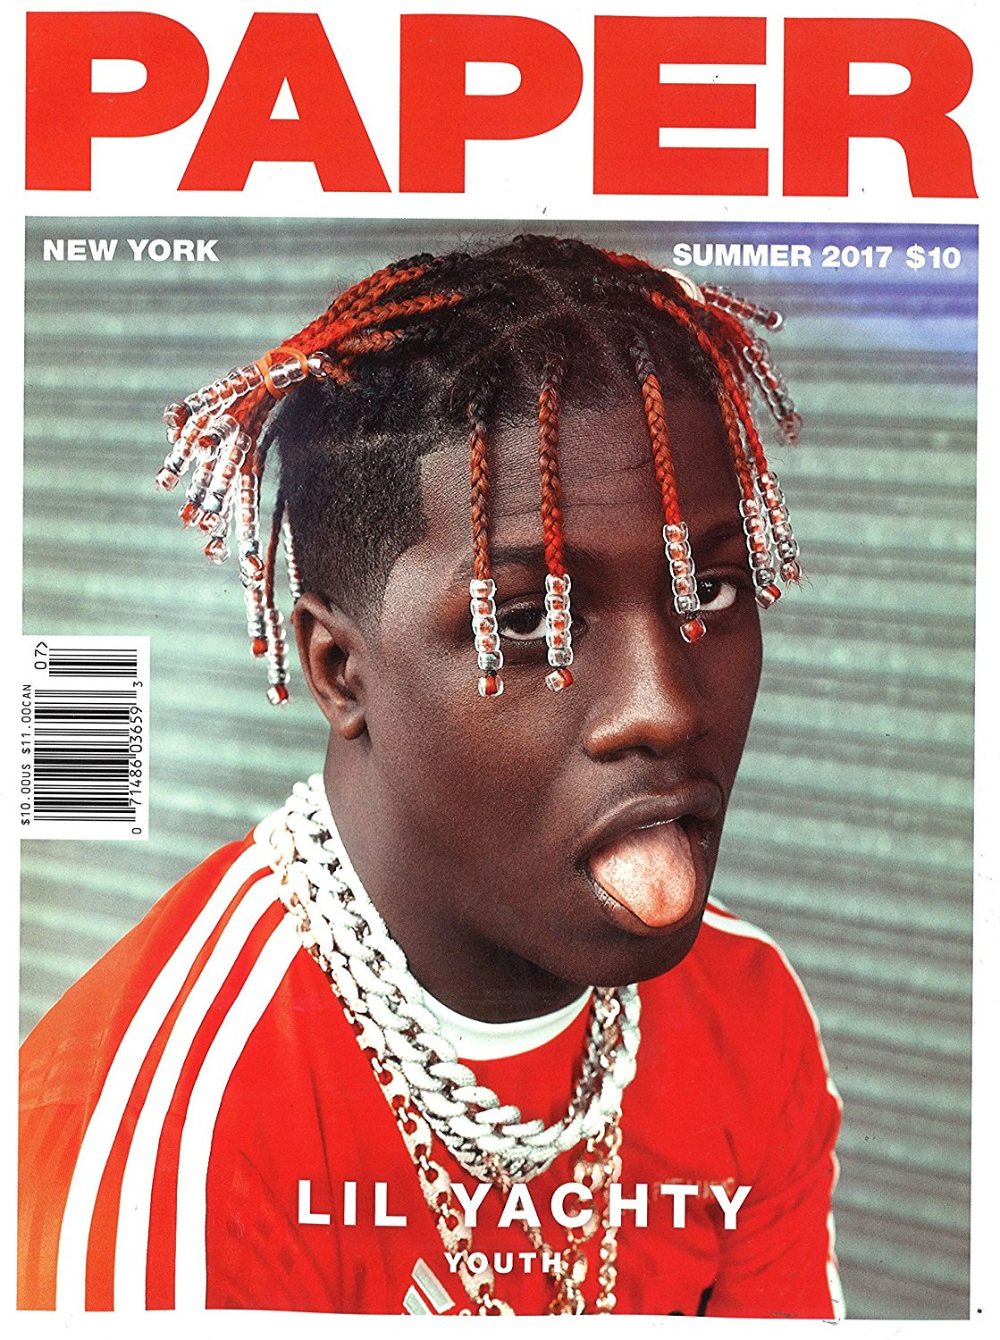 Paper Magazine Subscription Paper Magazine Cover Magazine Front Cover Lil Yachty